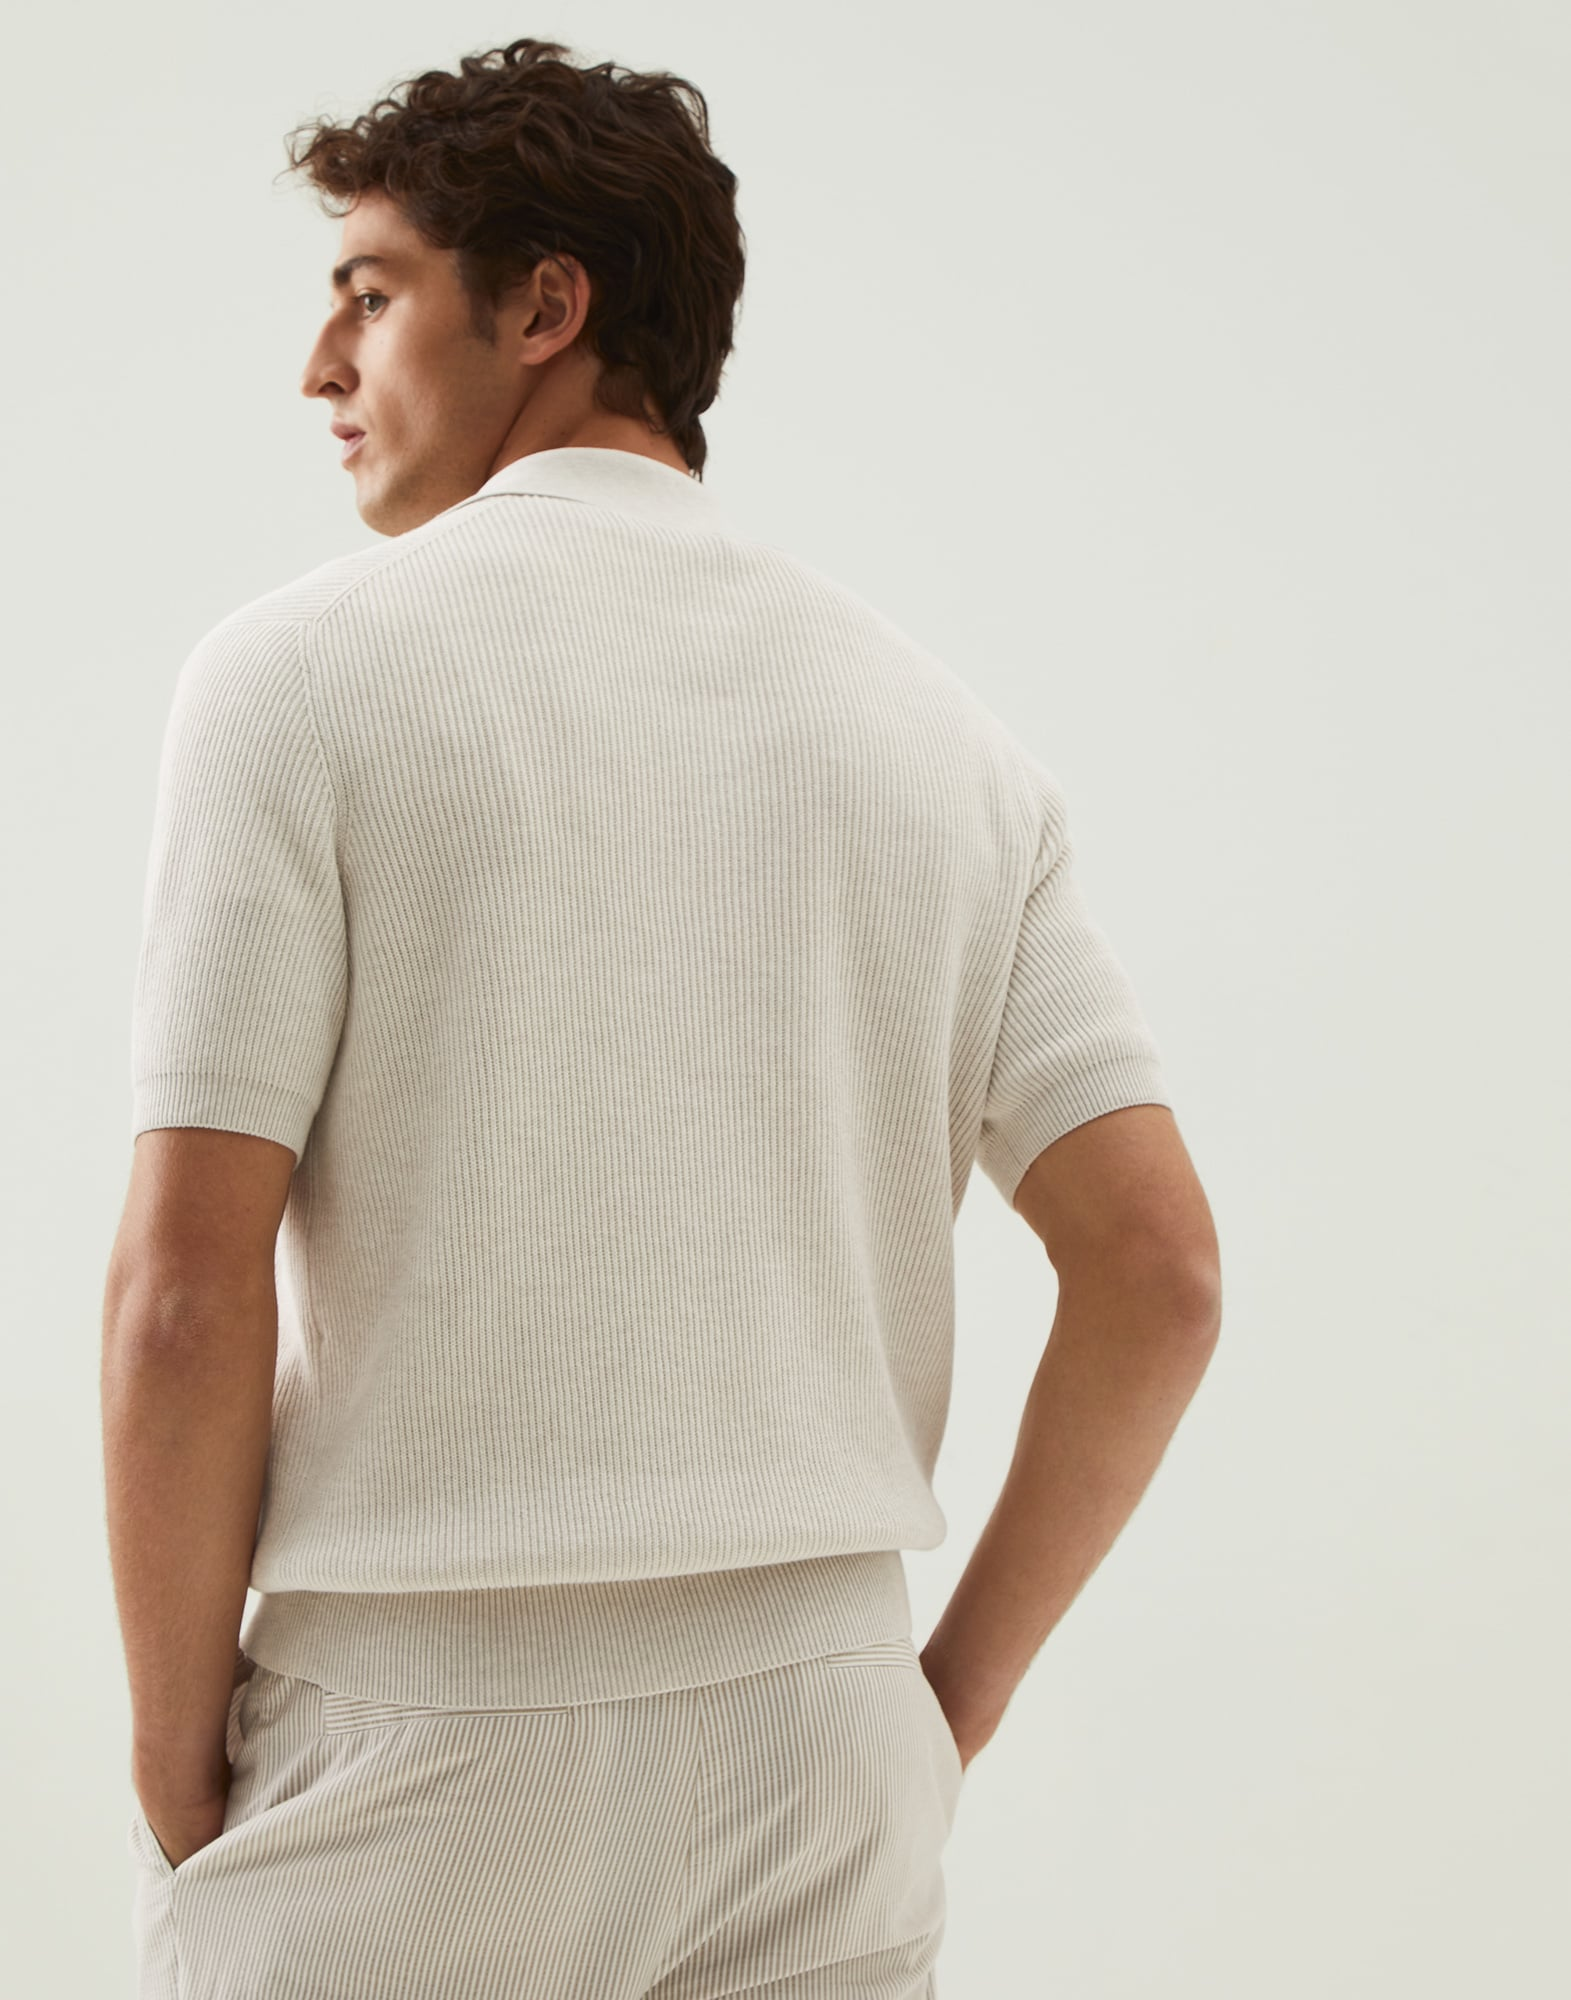 Polo-Style Sweater - Back view